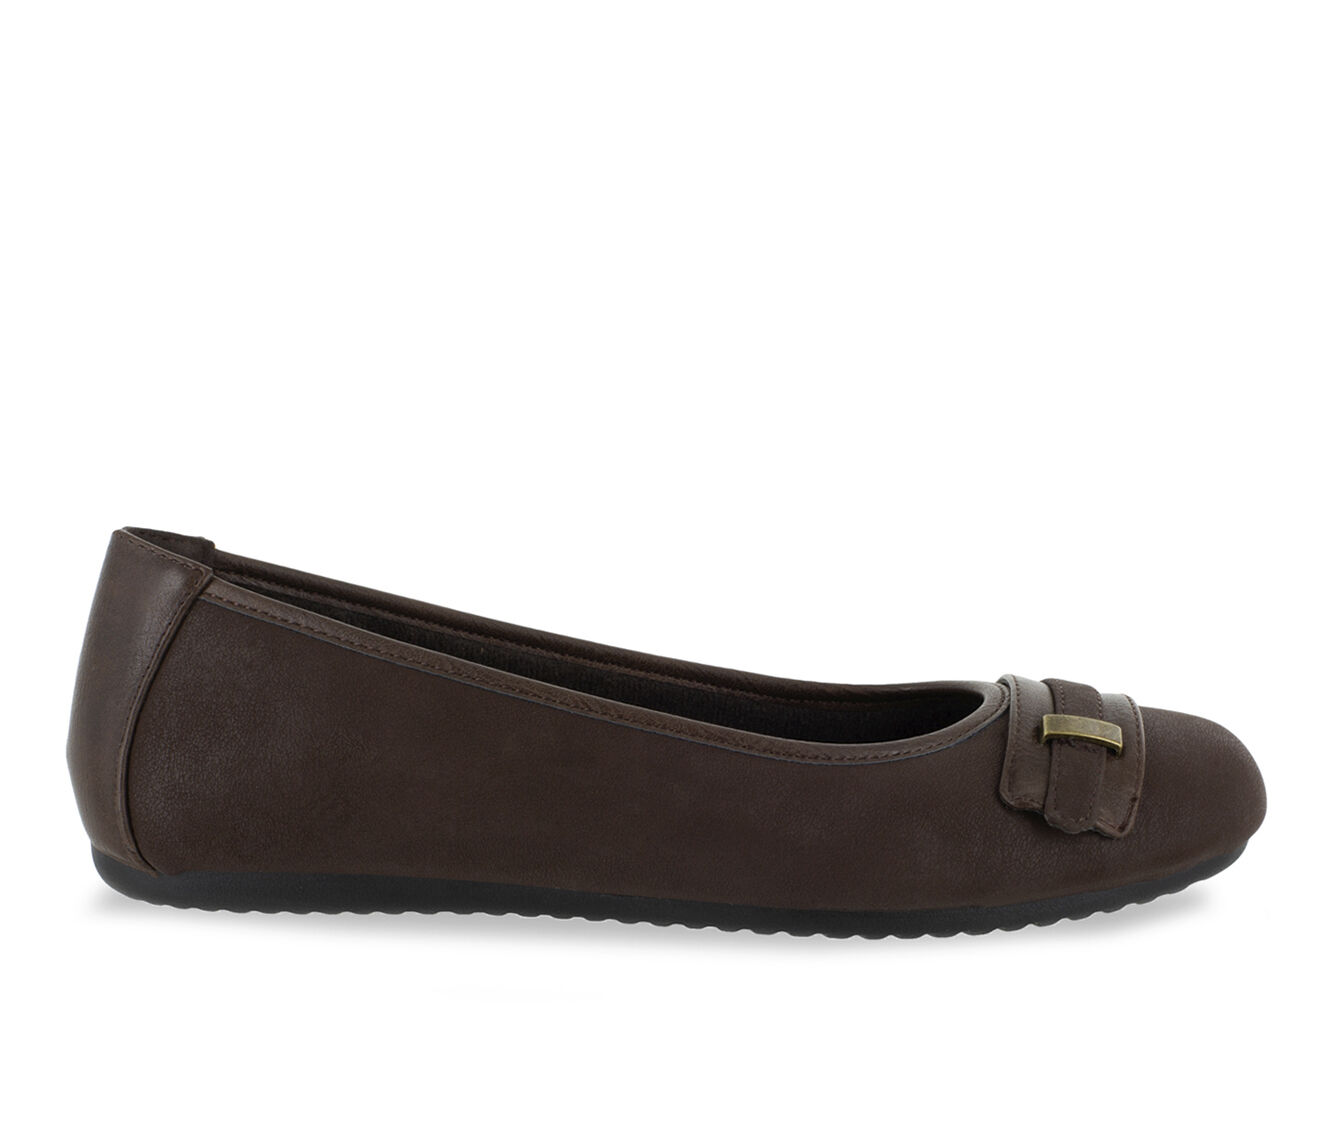 shop cheap new style Women's Easy Street Angie Shoes Brown